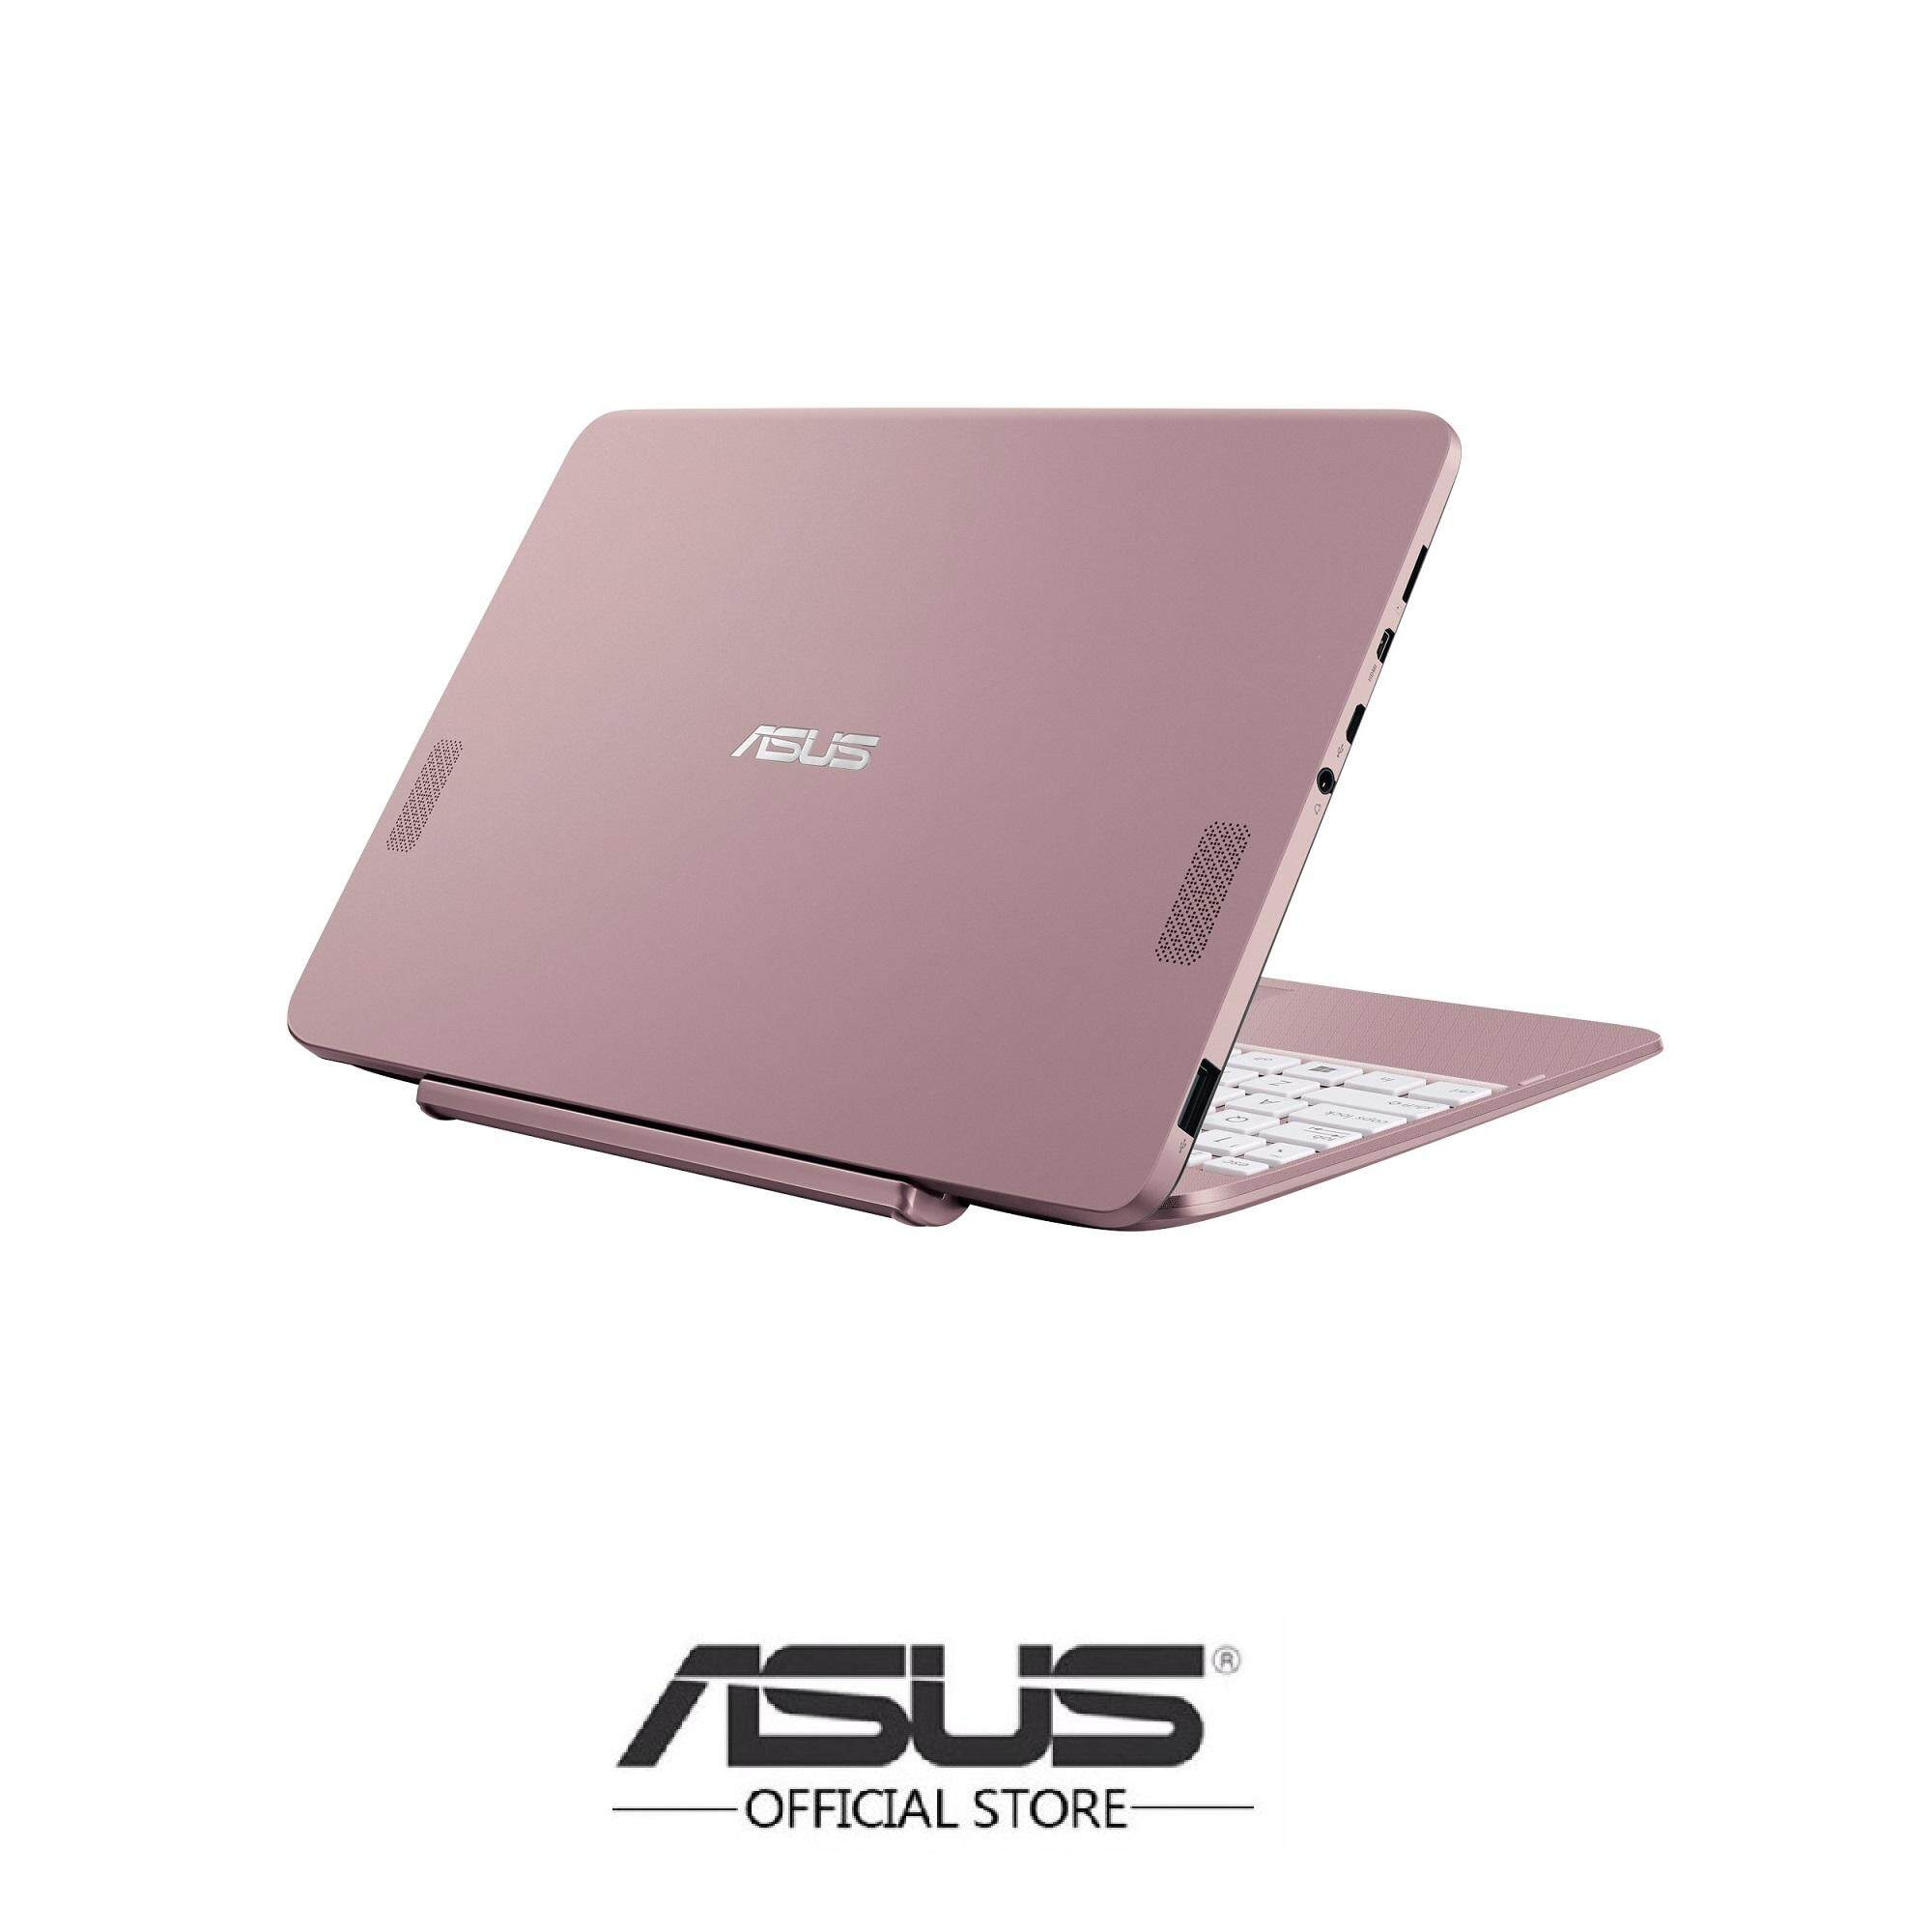 Asus Transformer Book T101HA T101H-AGR007T PINK (10.1/Z8350/2G[ON BD]/64G/W10) Malaysia